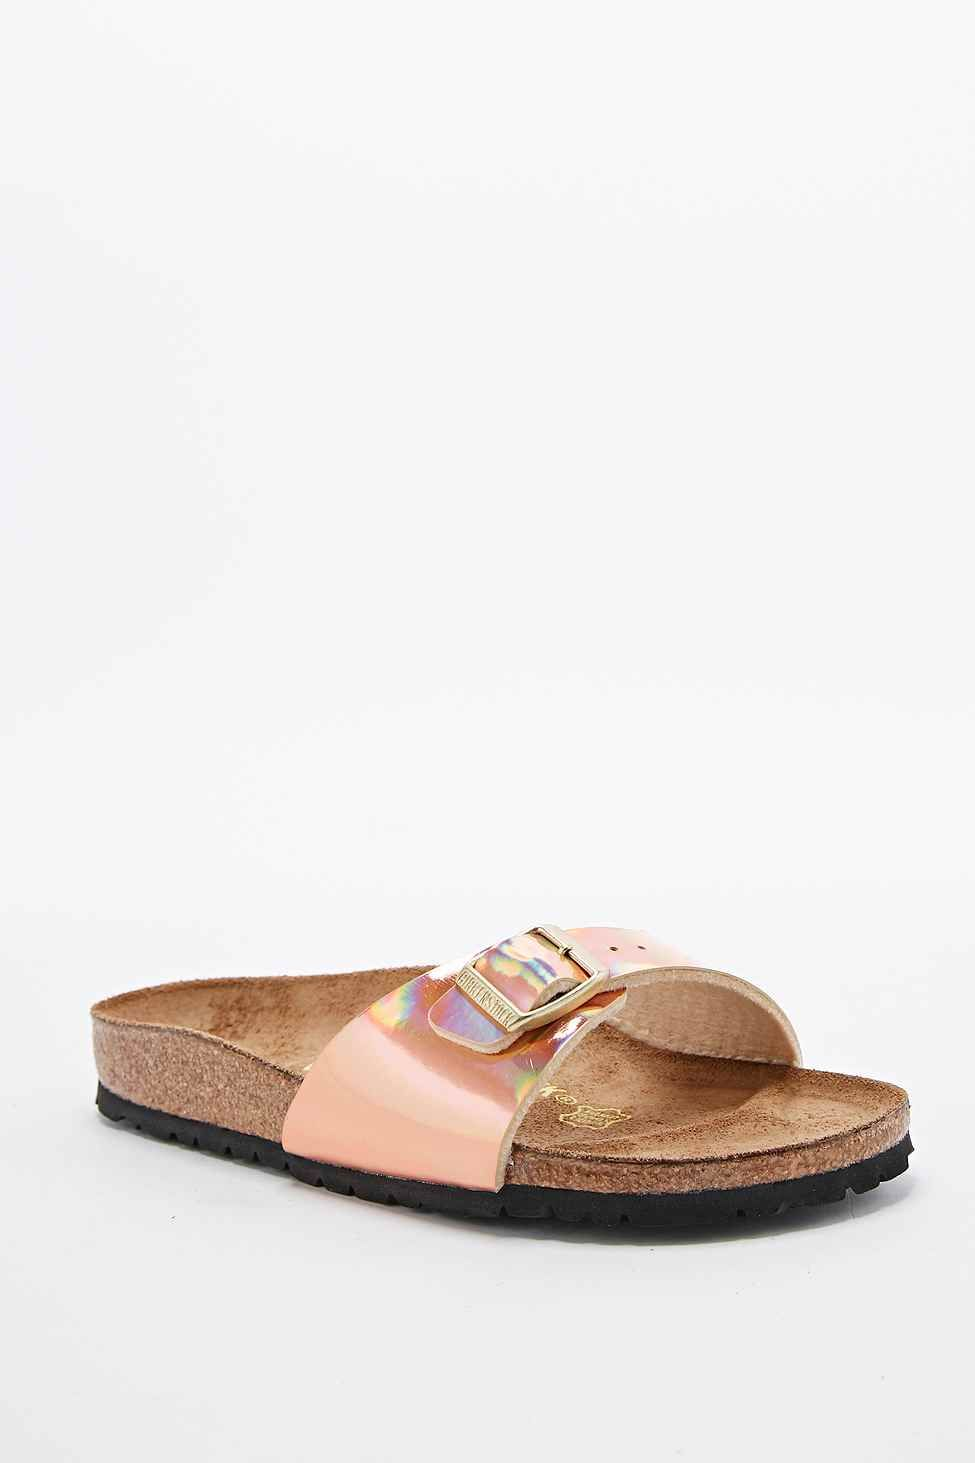 719048ce2fb Birkenstock Madrid Sandals in Rose Gold urbanoutfigt 50 E